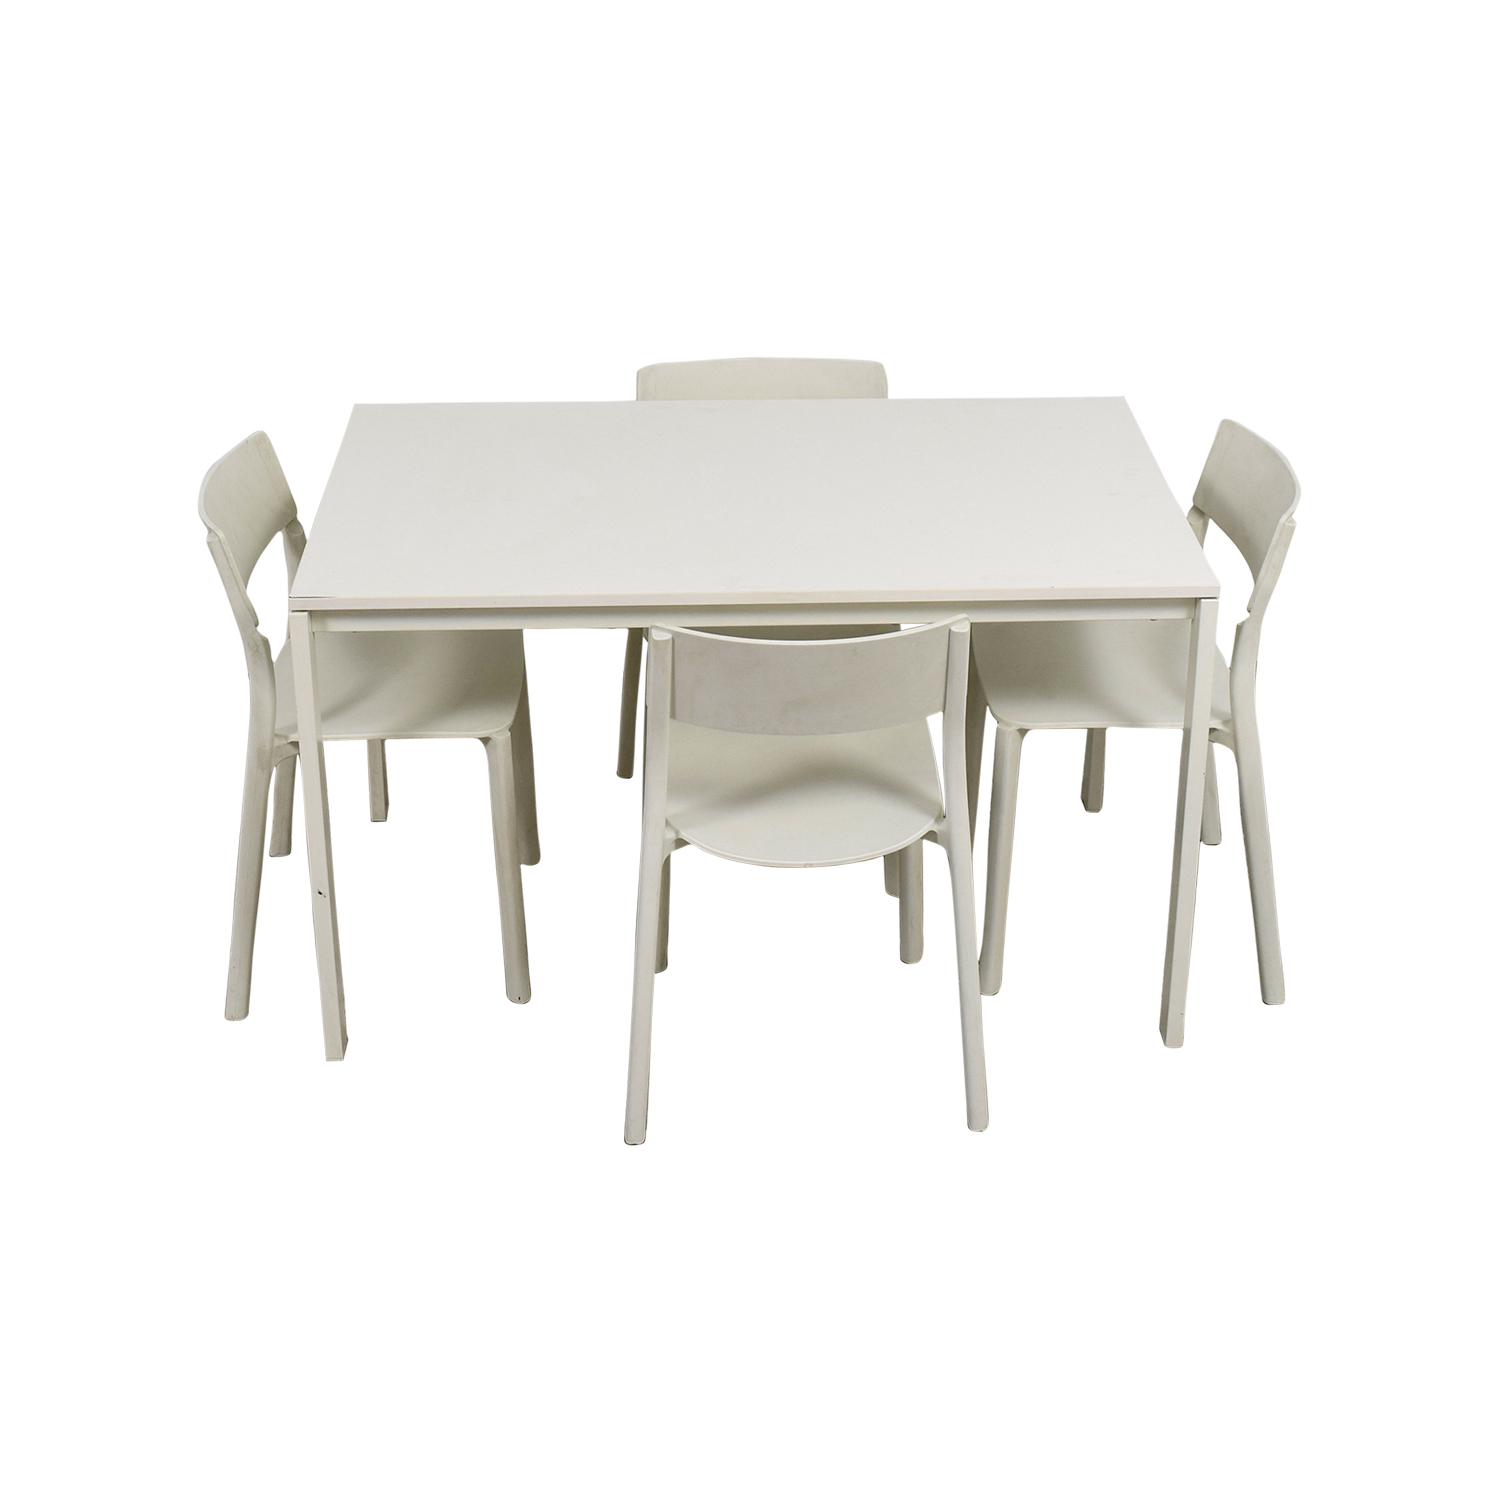 65 OFF  IKEA IKEA White Kitchen Table and Chairs  Tables